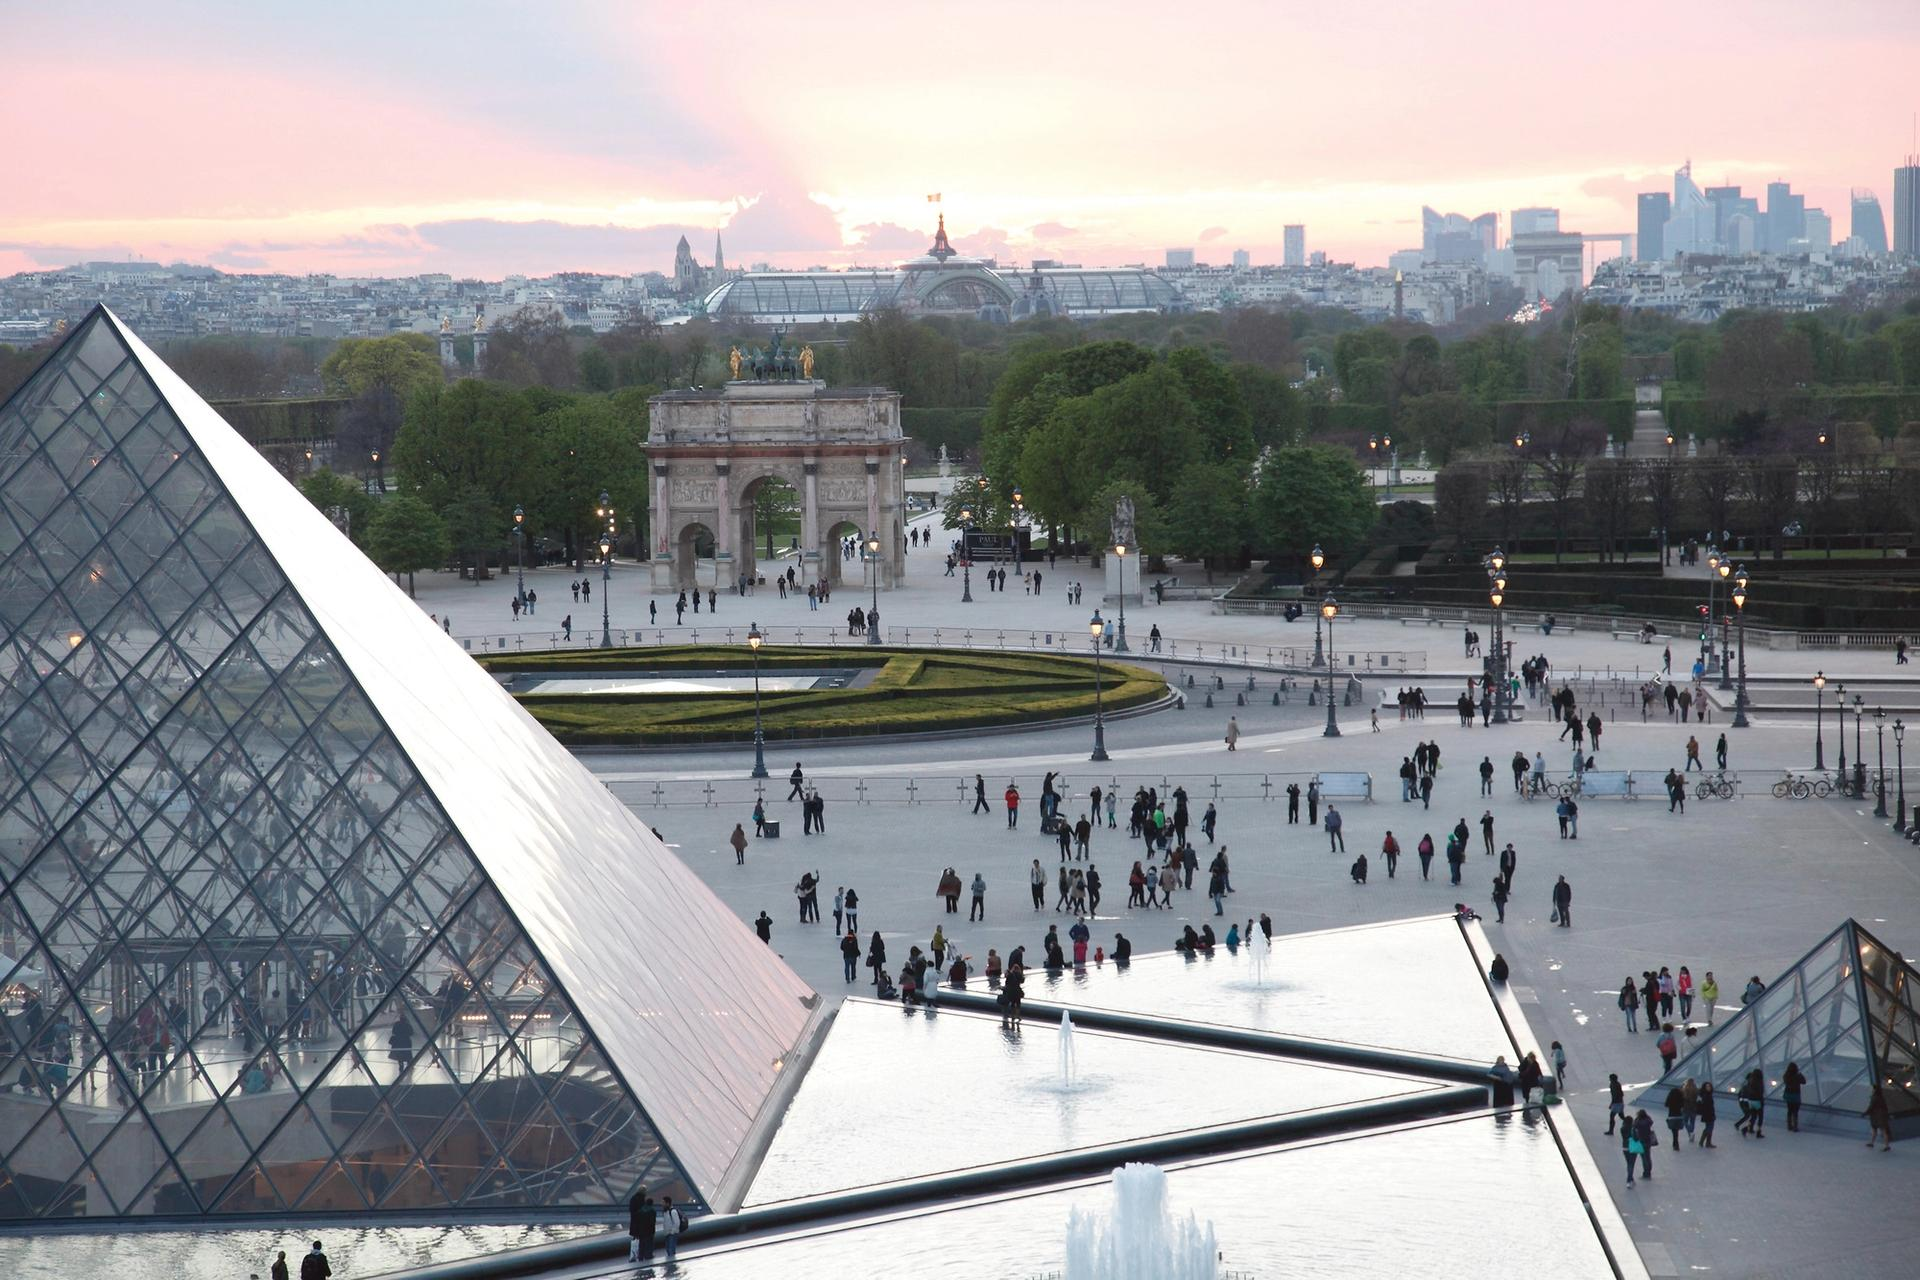 The Louvre received an undisclosed sum from Alwaleed Philanthropies  to redesign its Islamic galleries, which were reopened in full on Tuesday © 2014 Antoine Mongodin